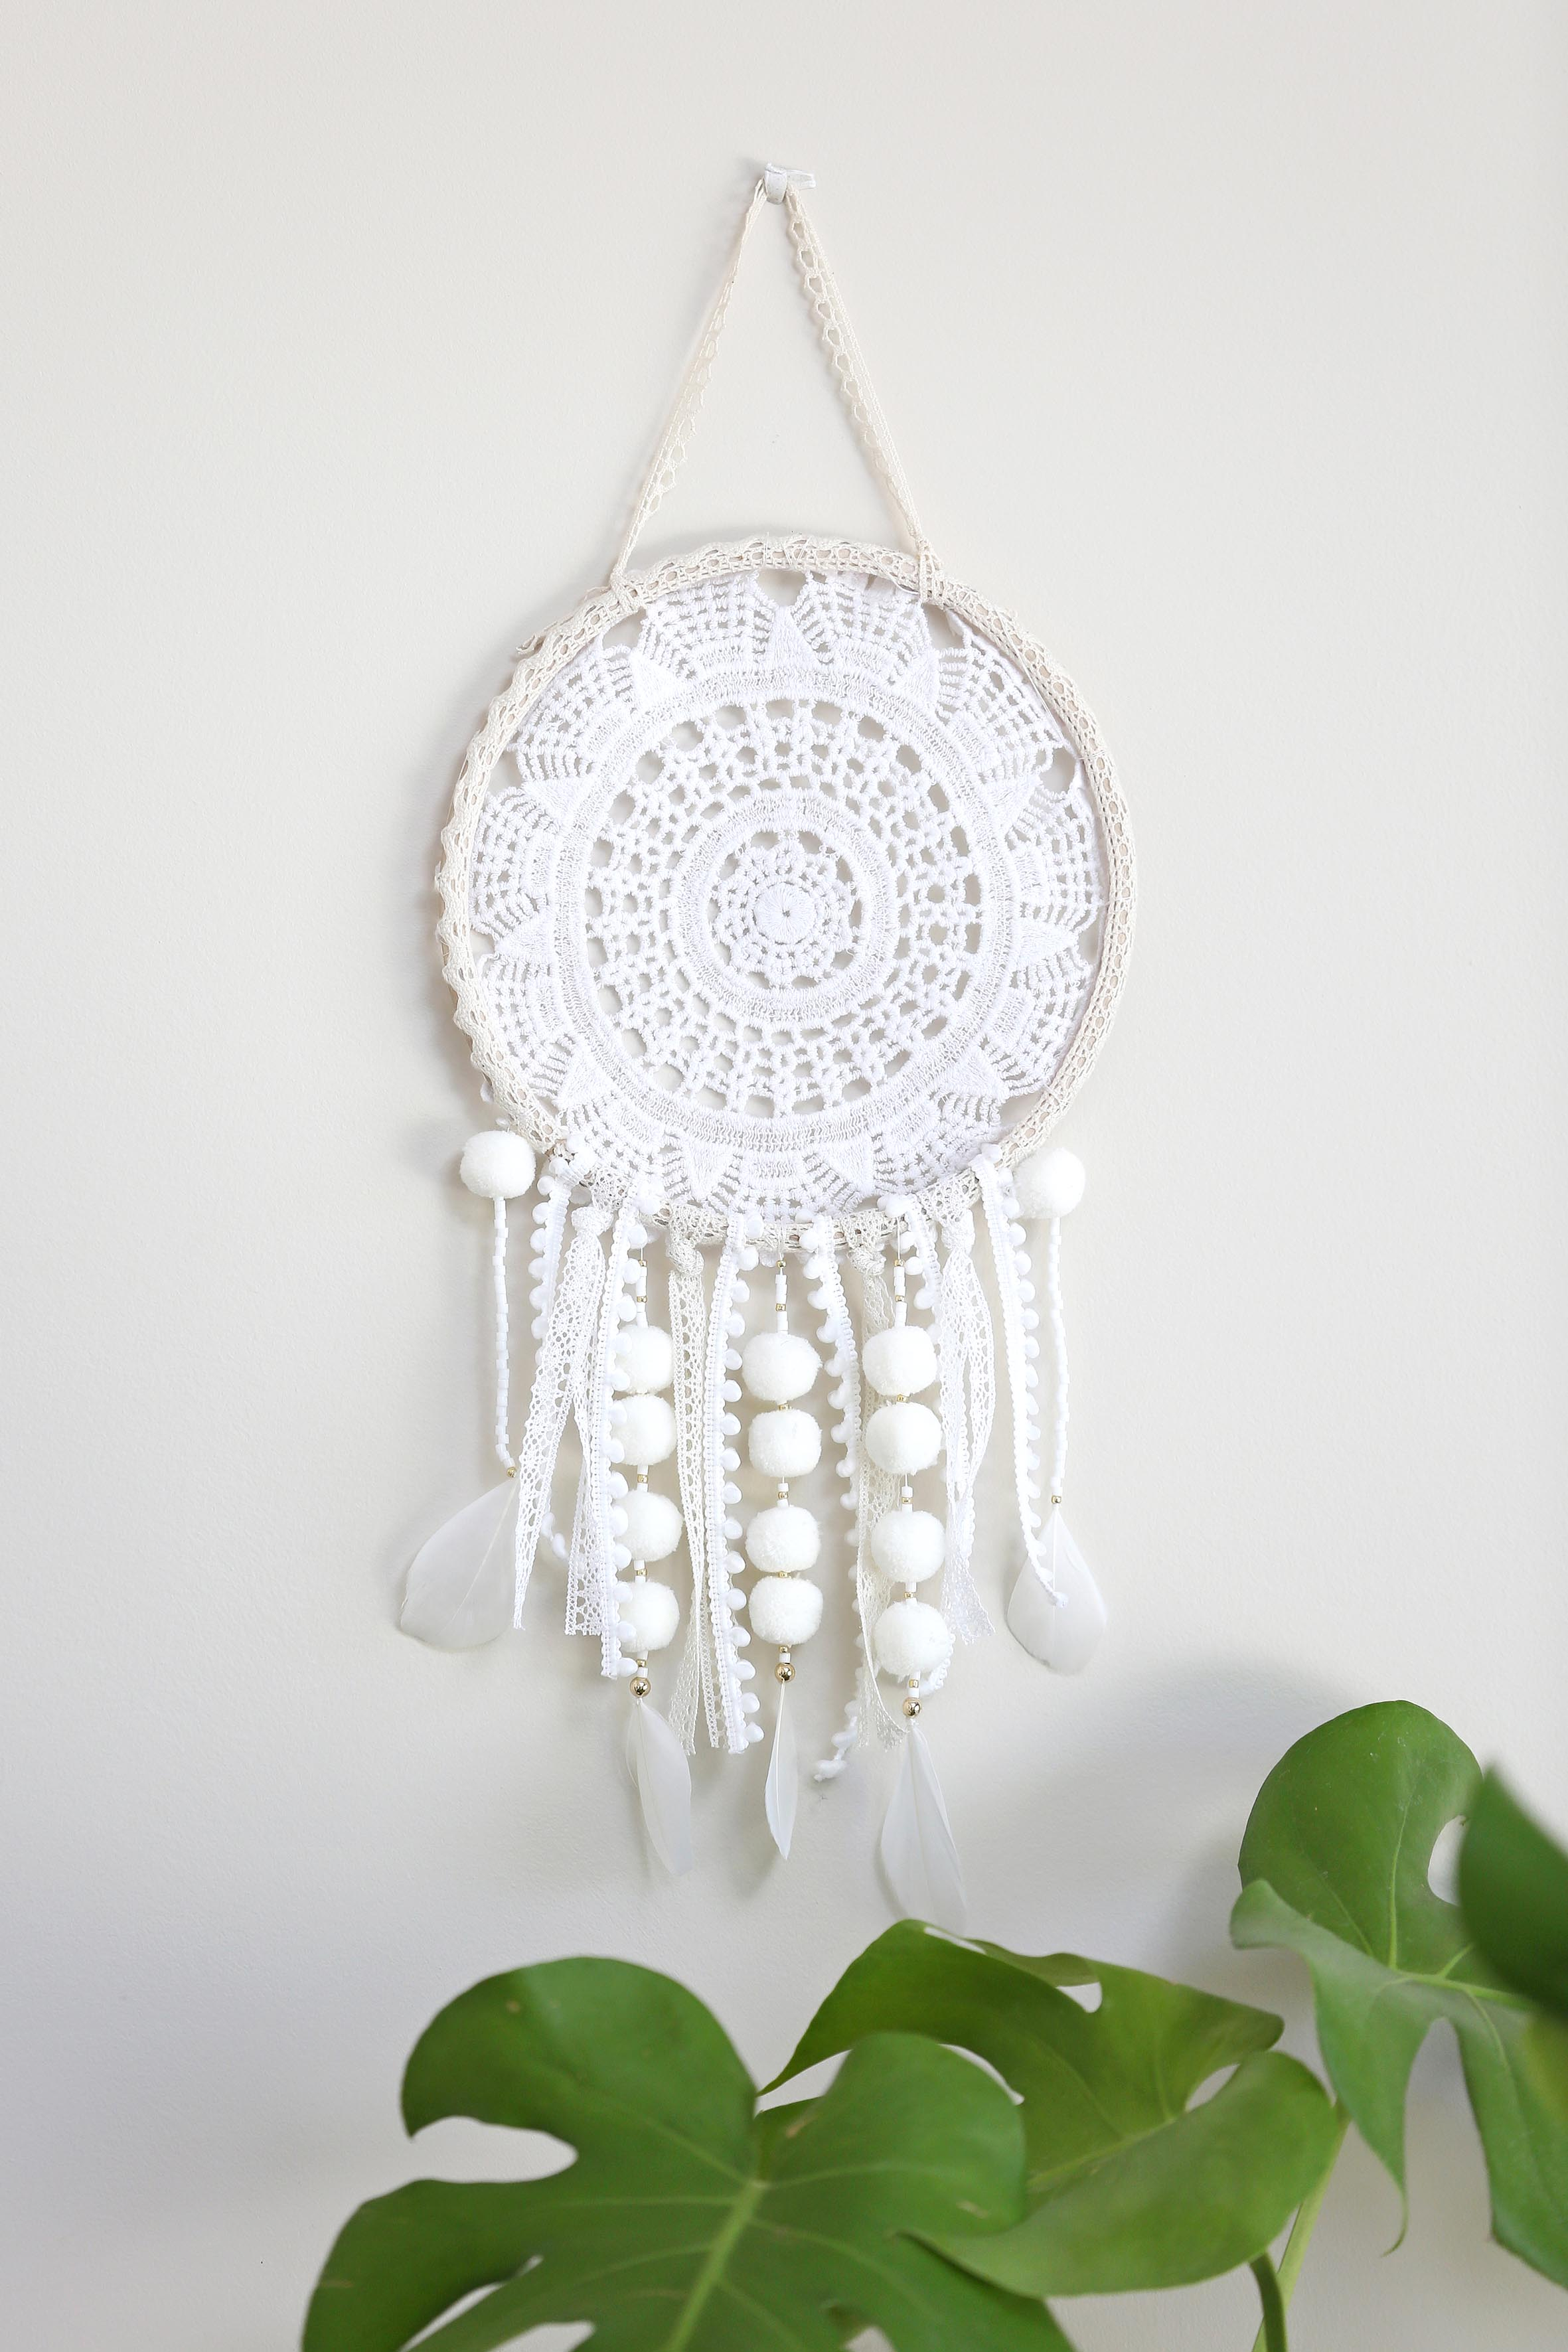 DIY-deco-make-collettore sogni-dream-catcher-semplici-VF